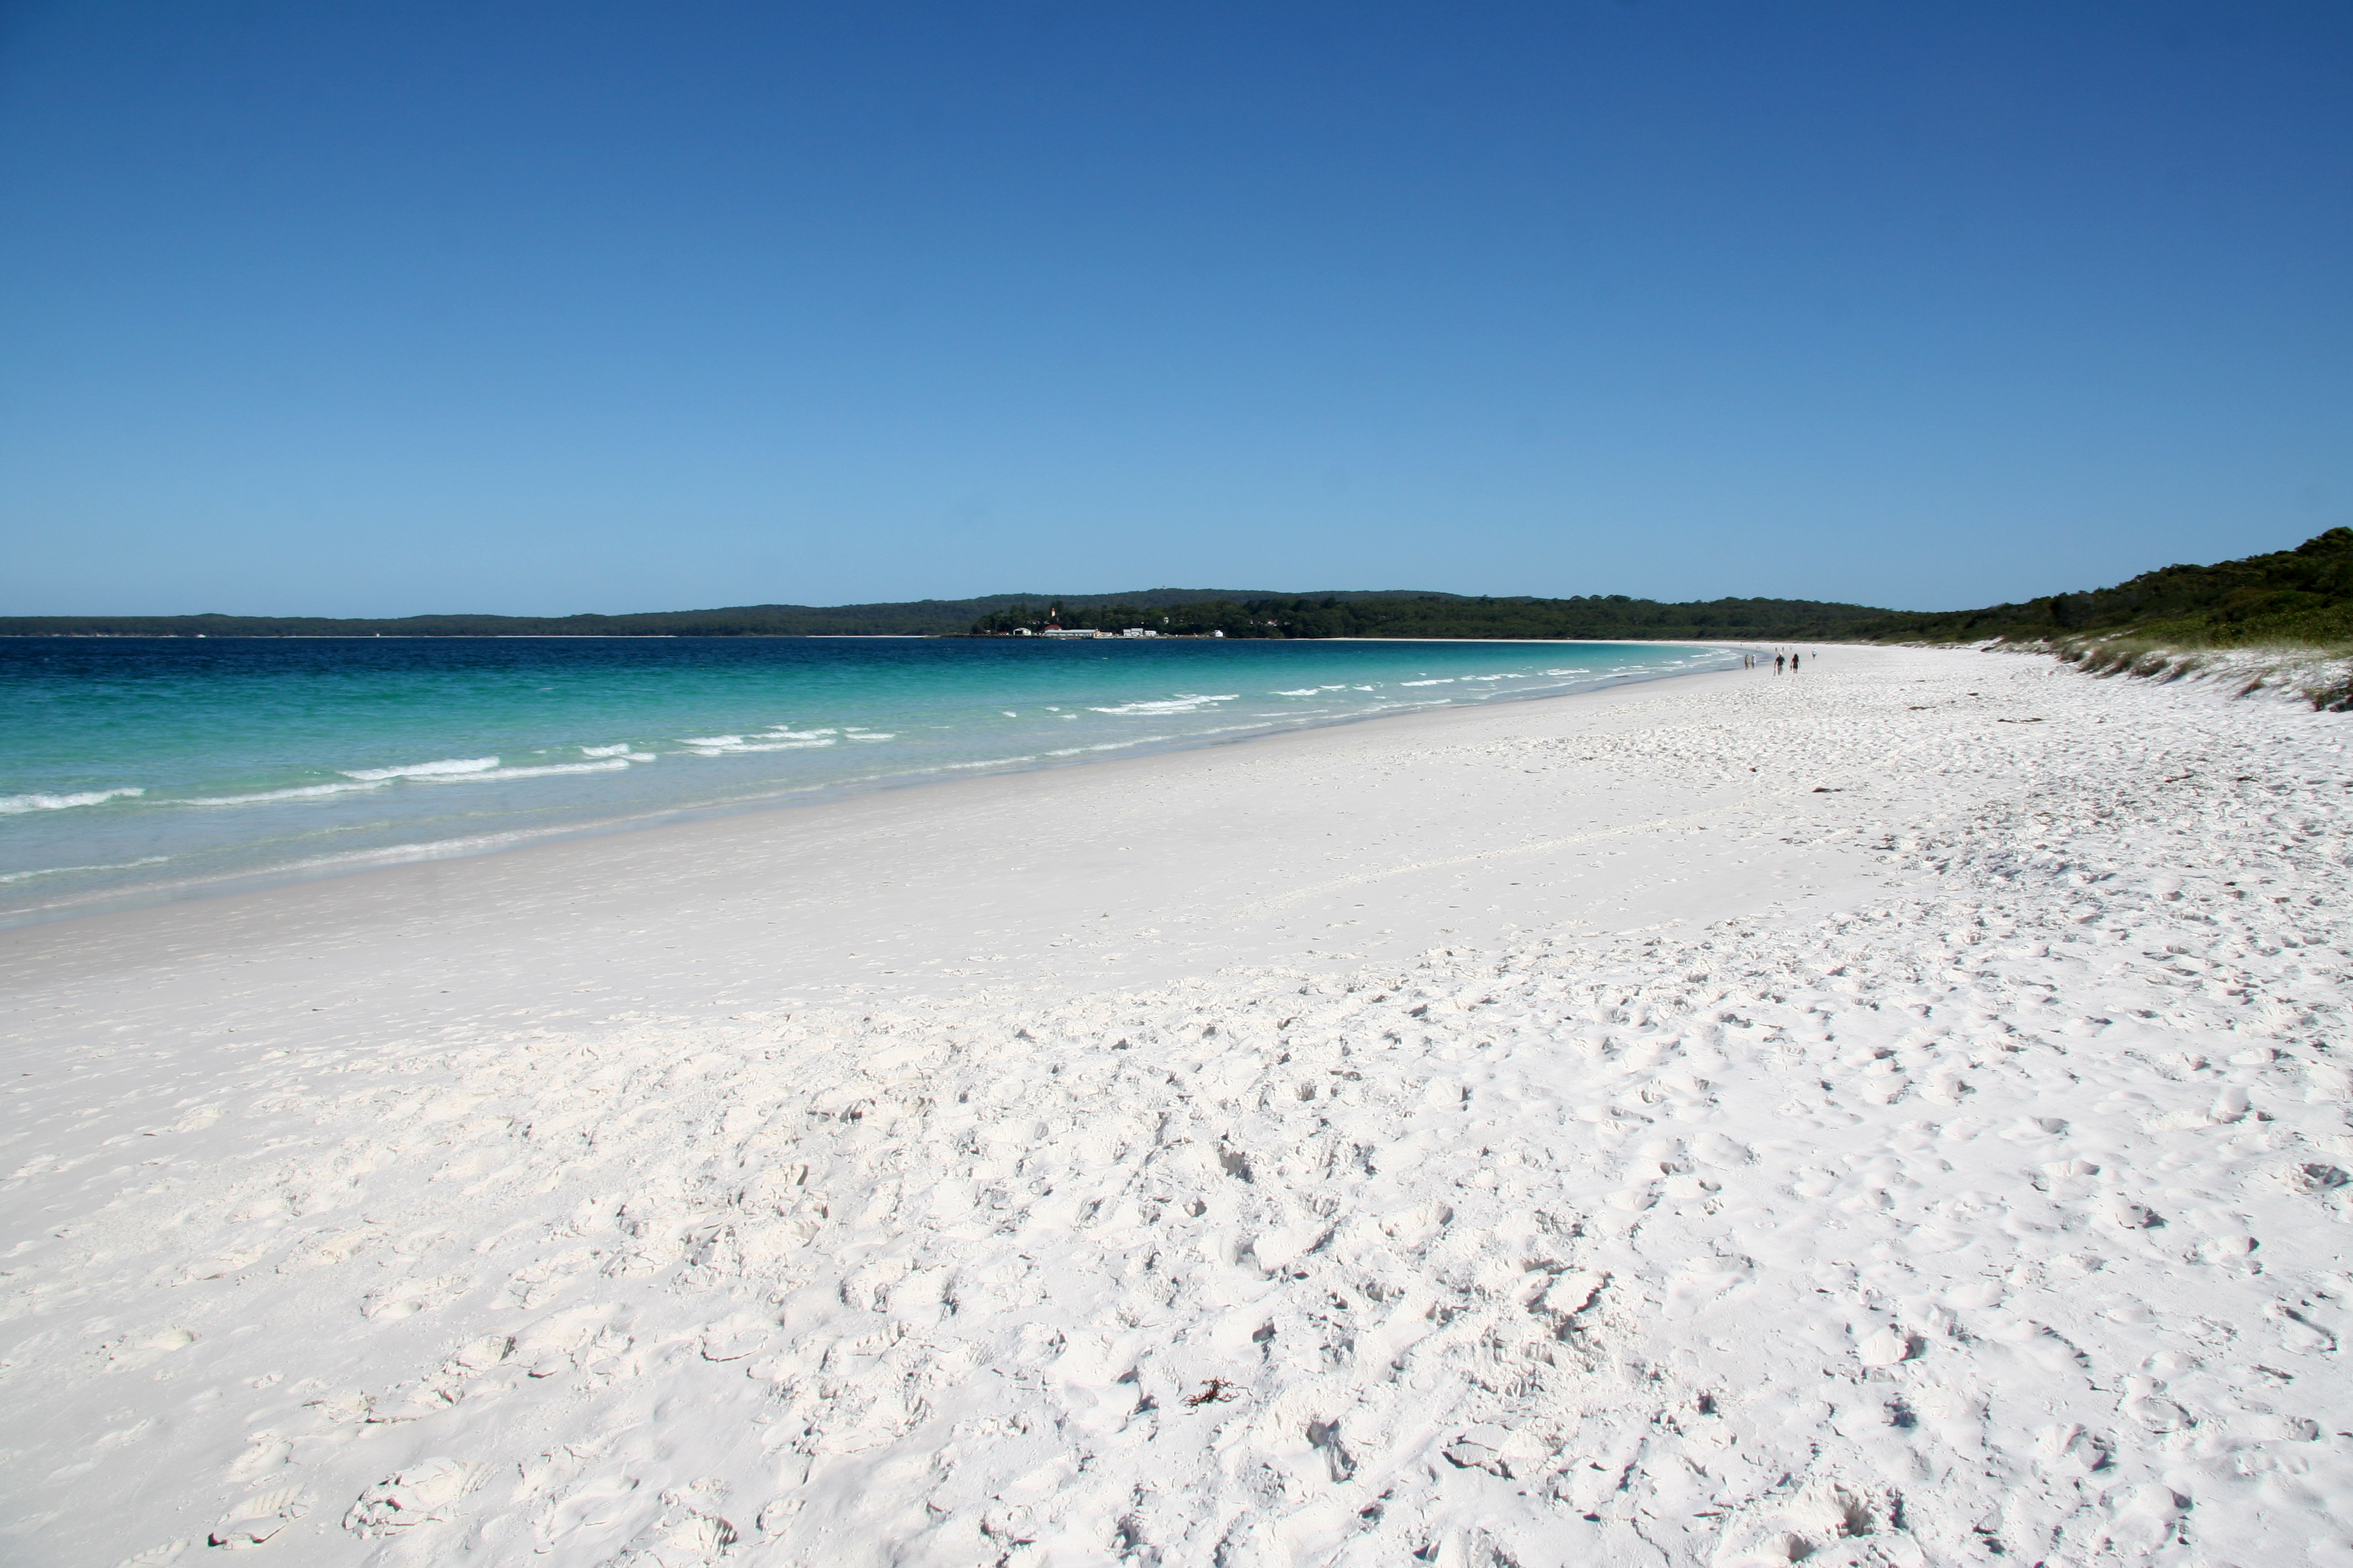 Hyams Beach By Dave Naithani (Own work) [CC-BY-SA-3.0 (http://creativecommons.org/licenses/by-sa/3.0)], via Wikimedia Commons